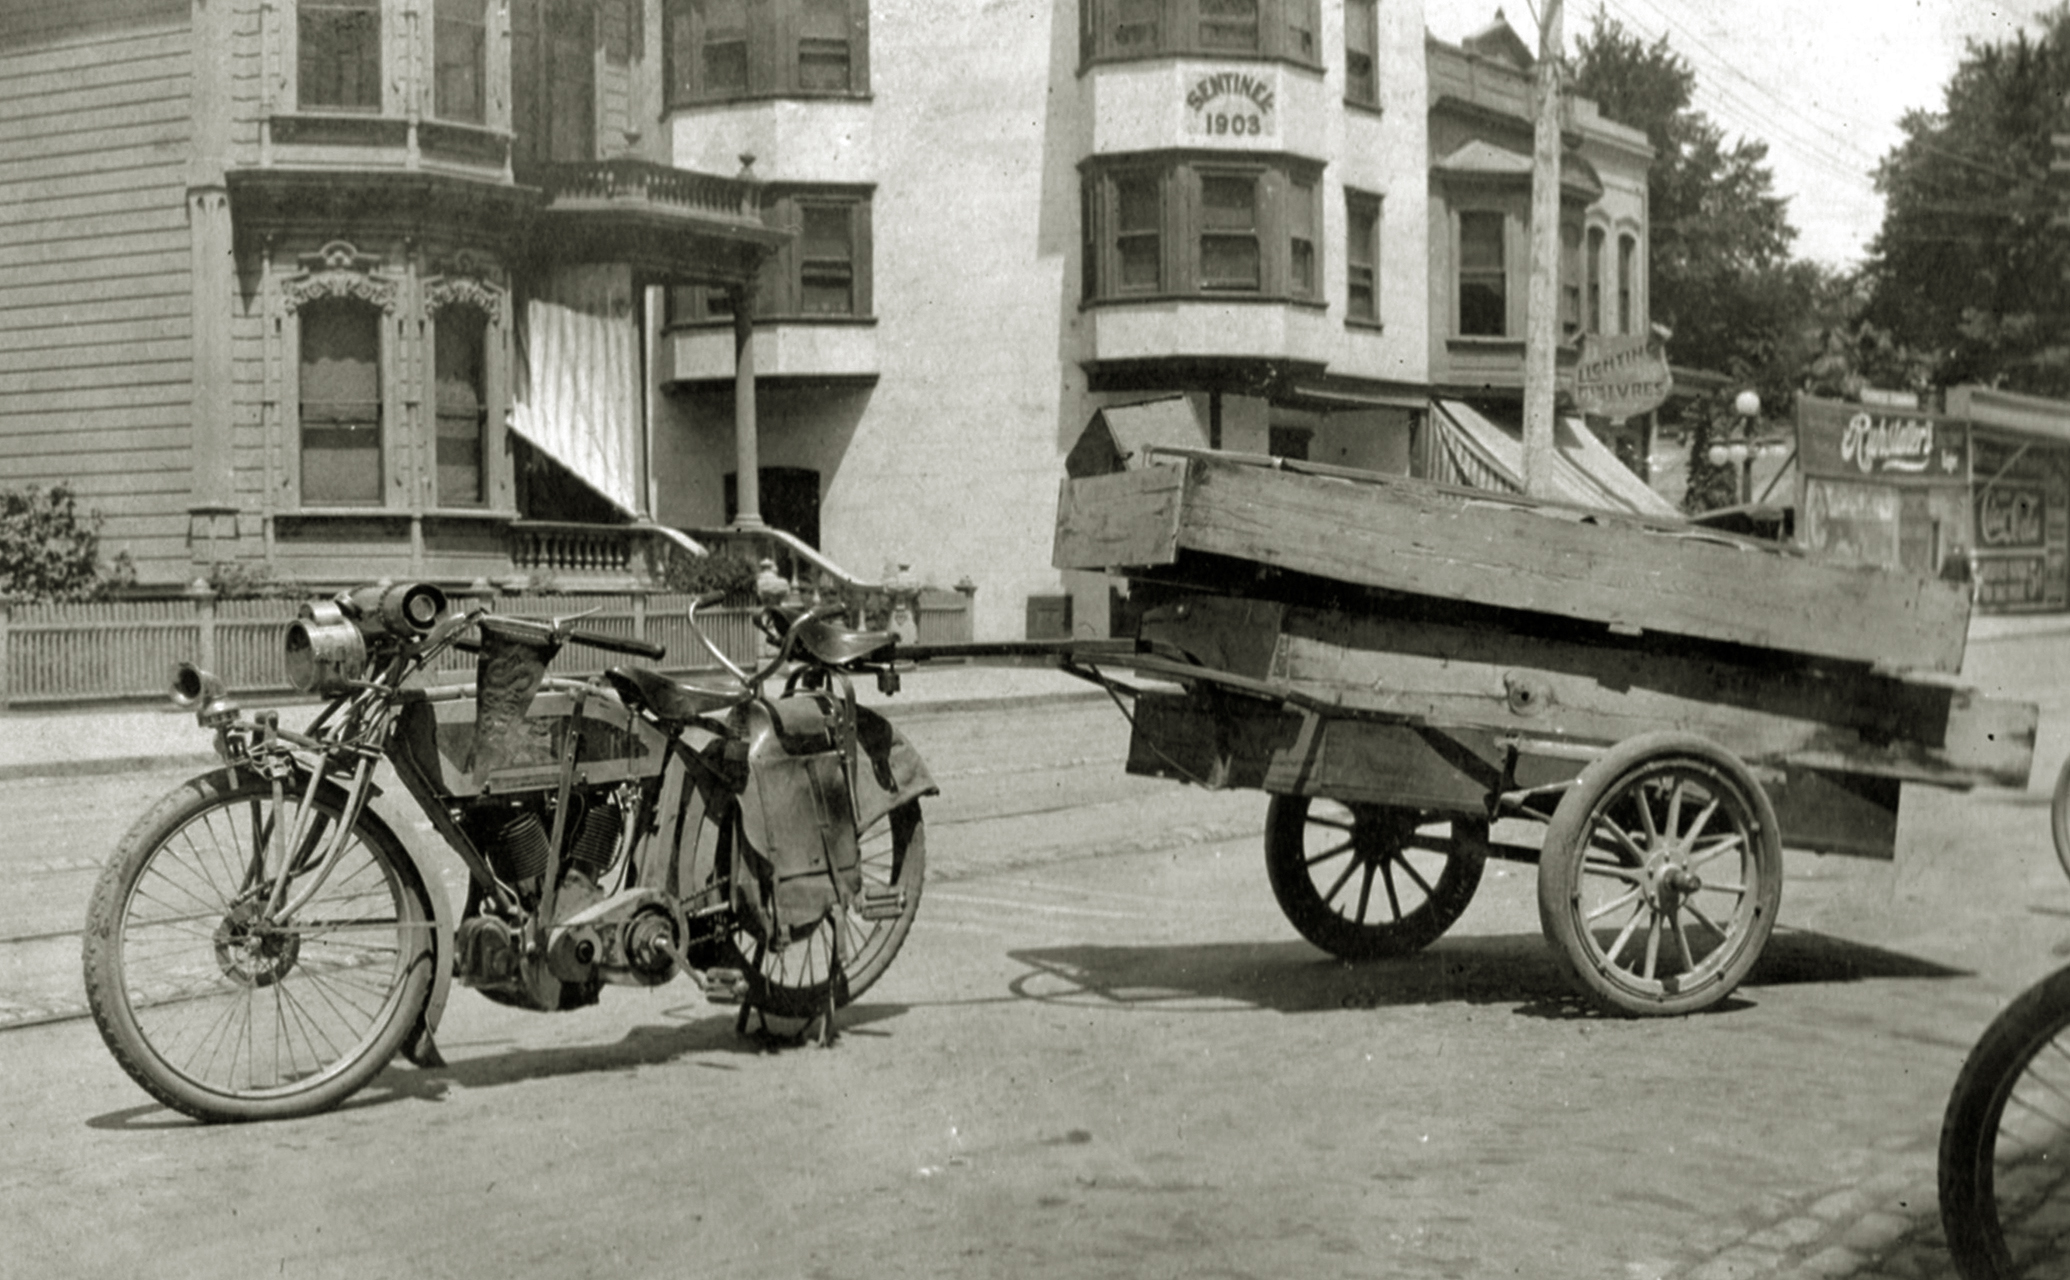 Riders were very Ingenious in this period and there are several shots of Langley towing trailers with a motorcycle.